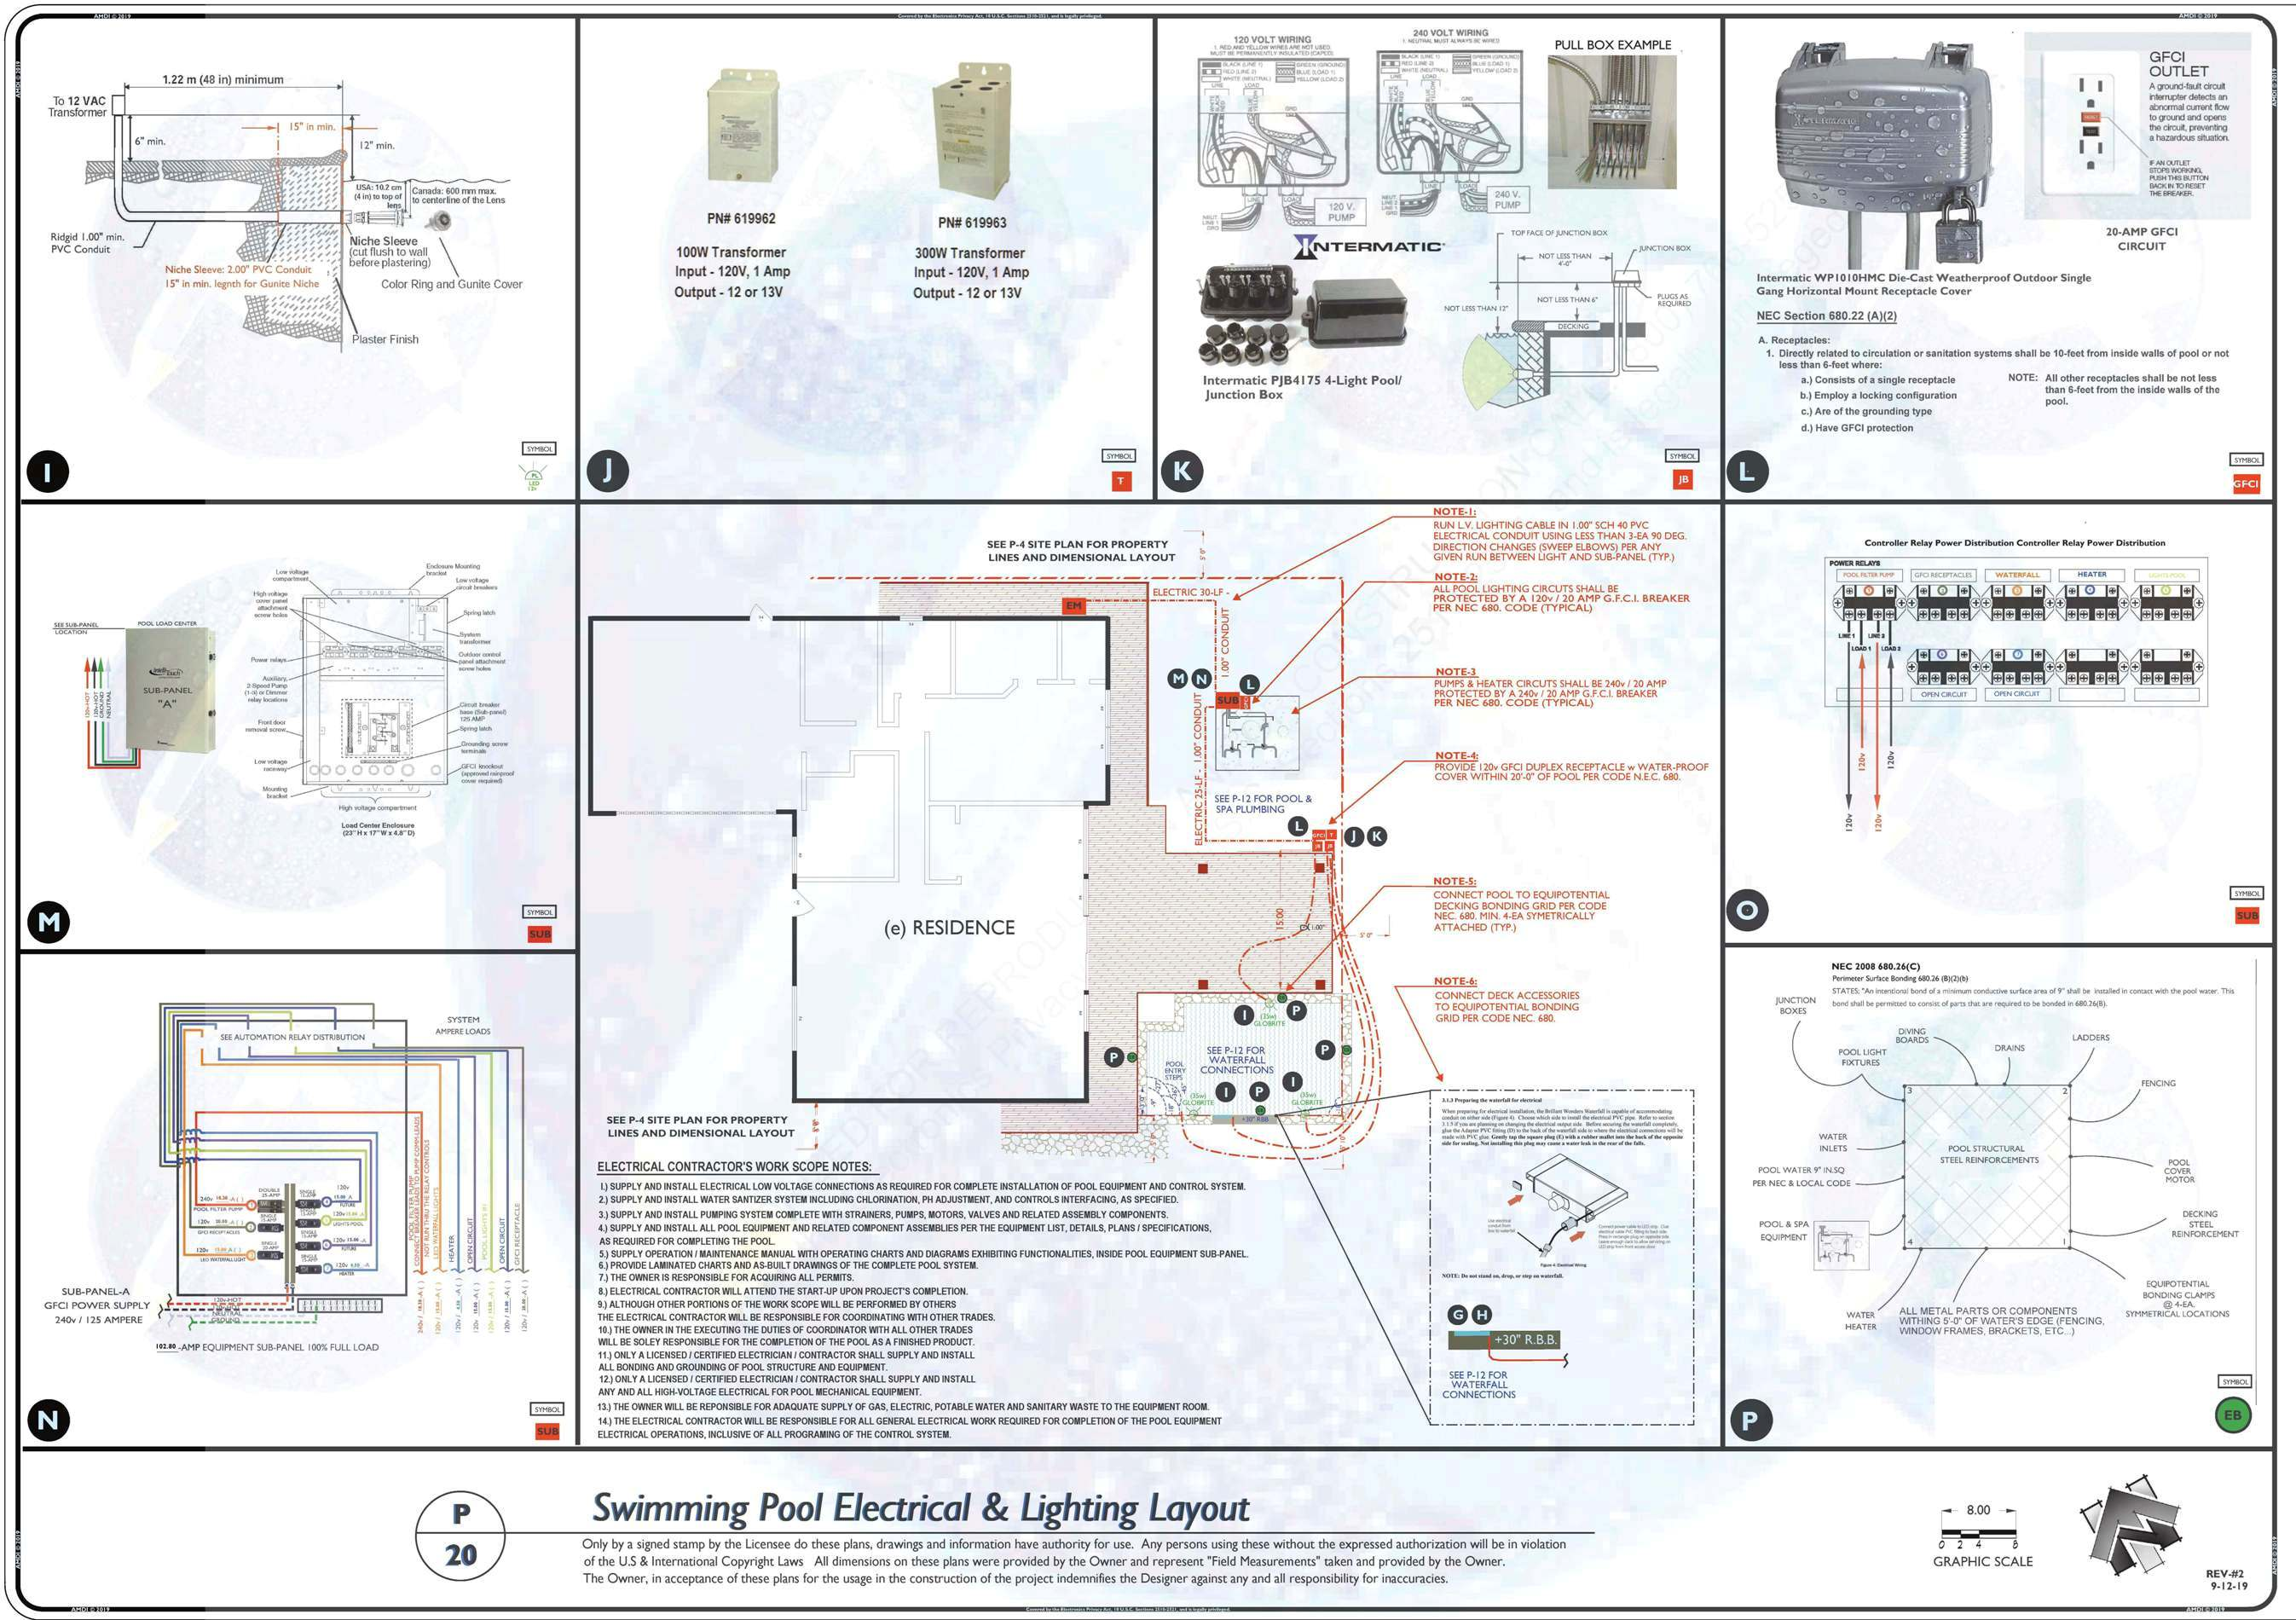 P-20 POOL AND SPA ELECTRICAL AND LIGHTING LAYOUT REV-2